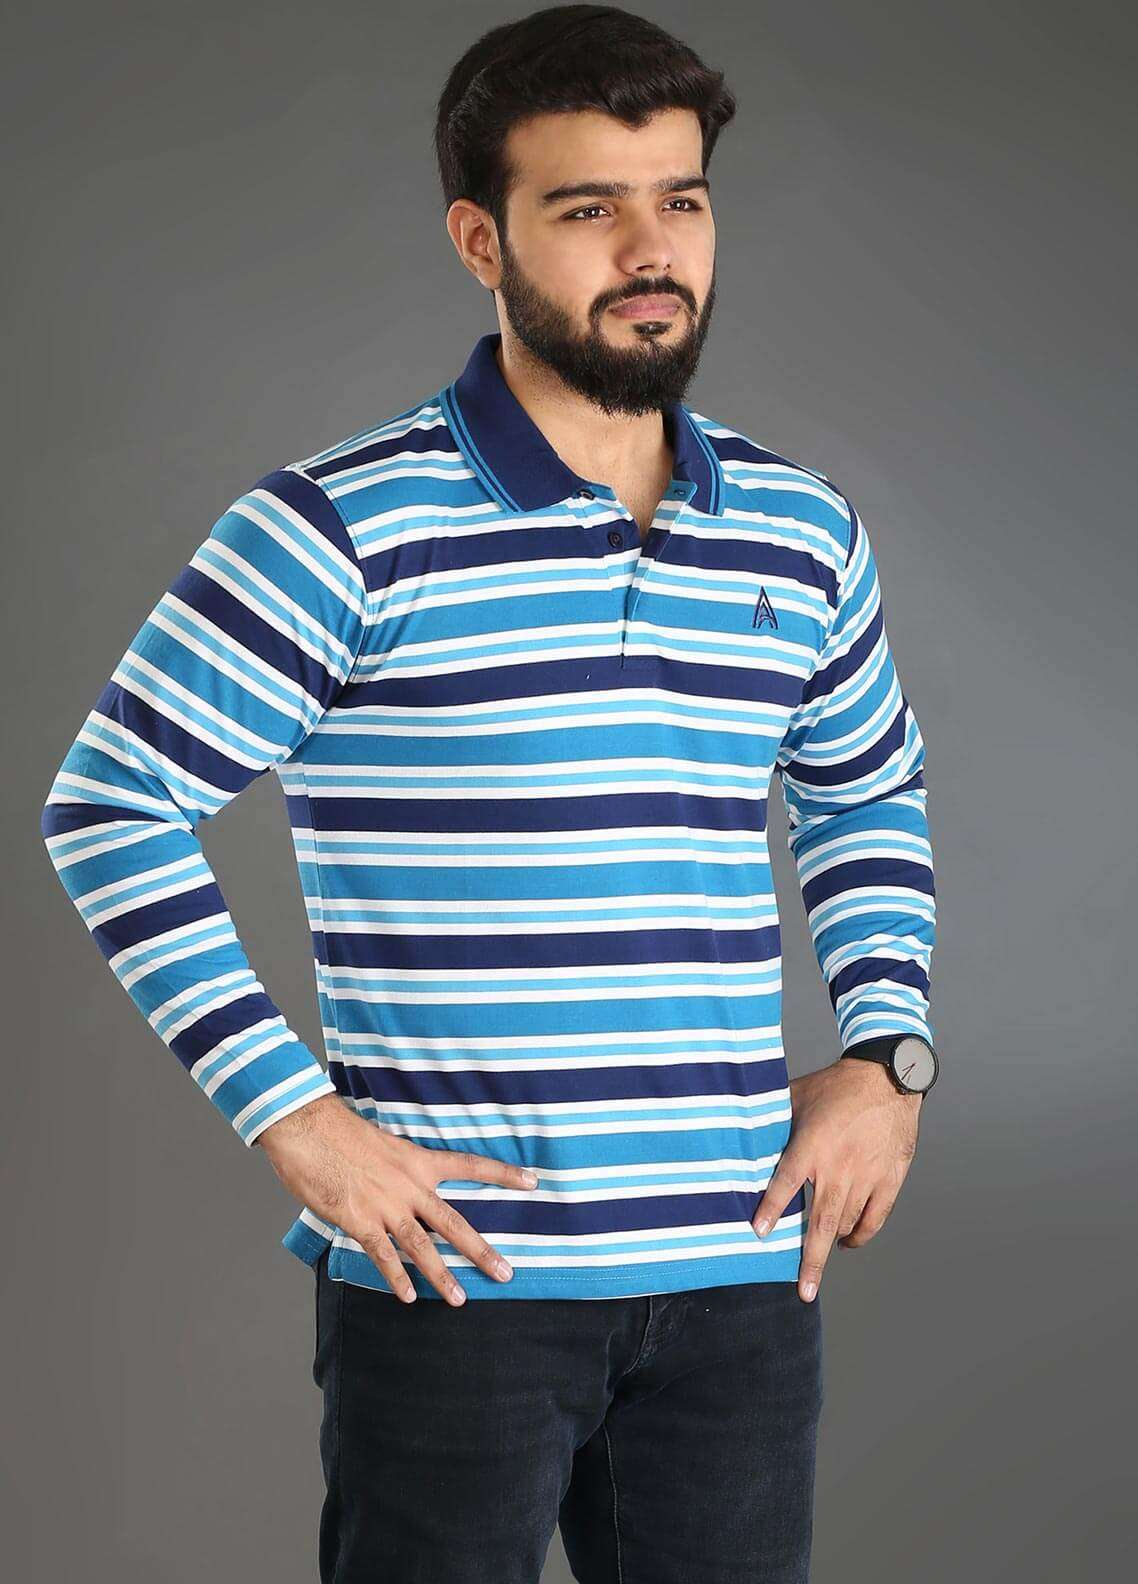 Anchor Jersey Polo T-Shirts for Men - Multi A-218